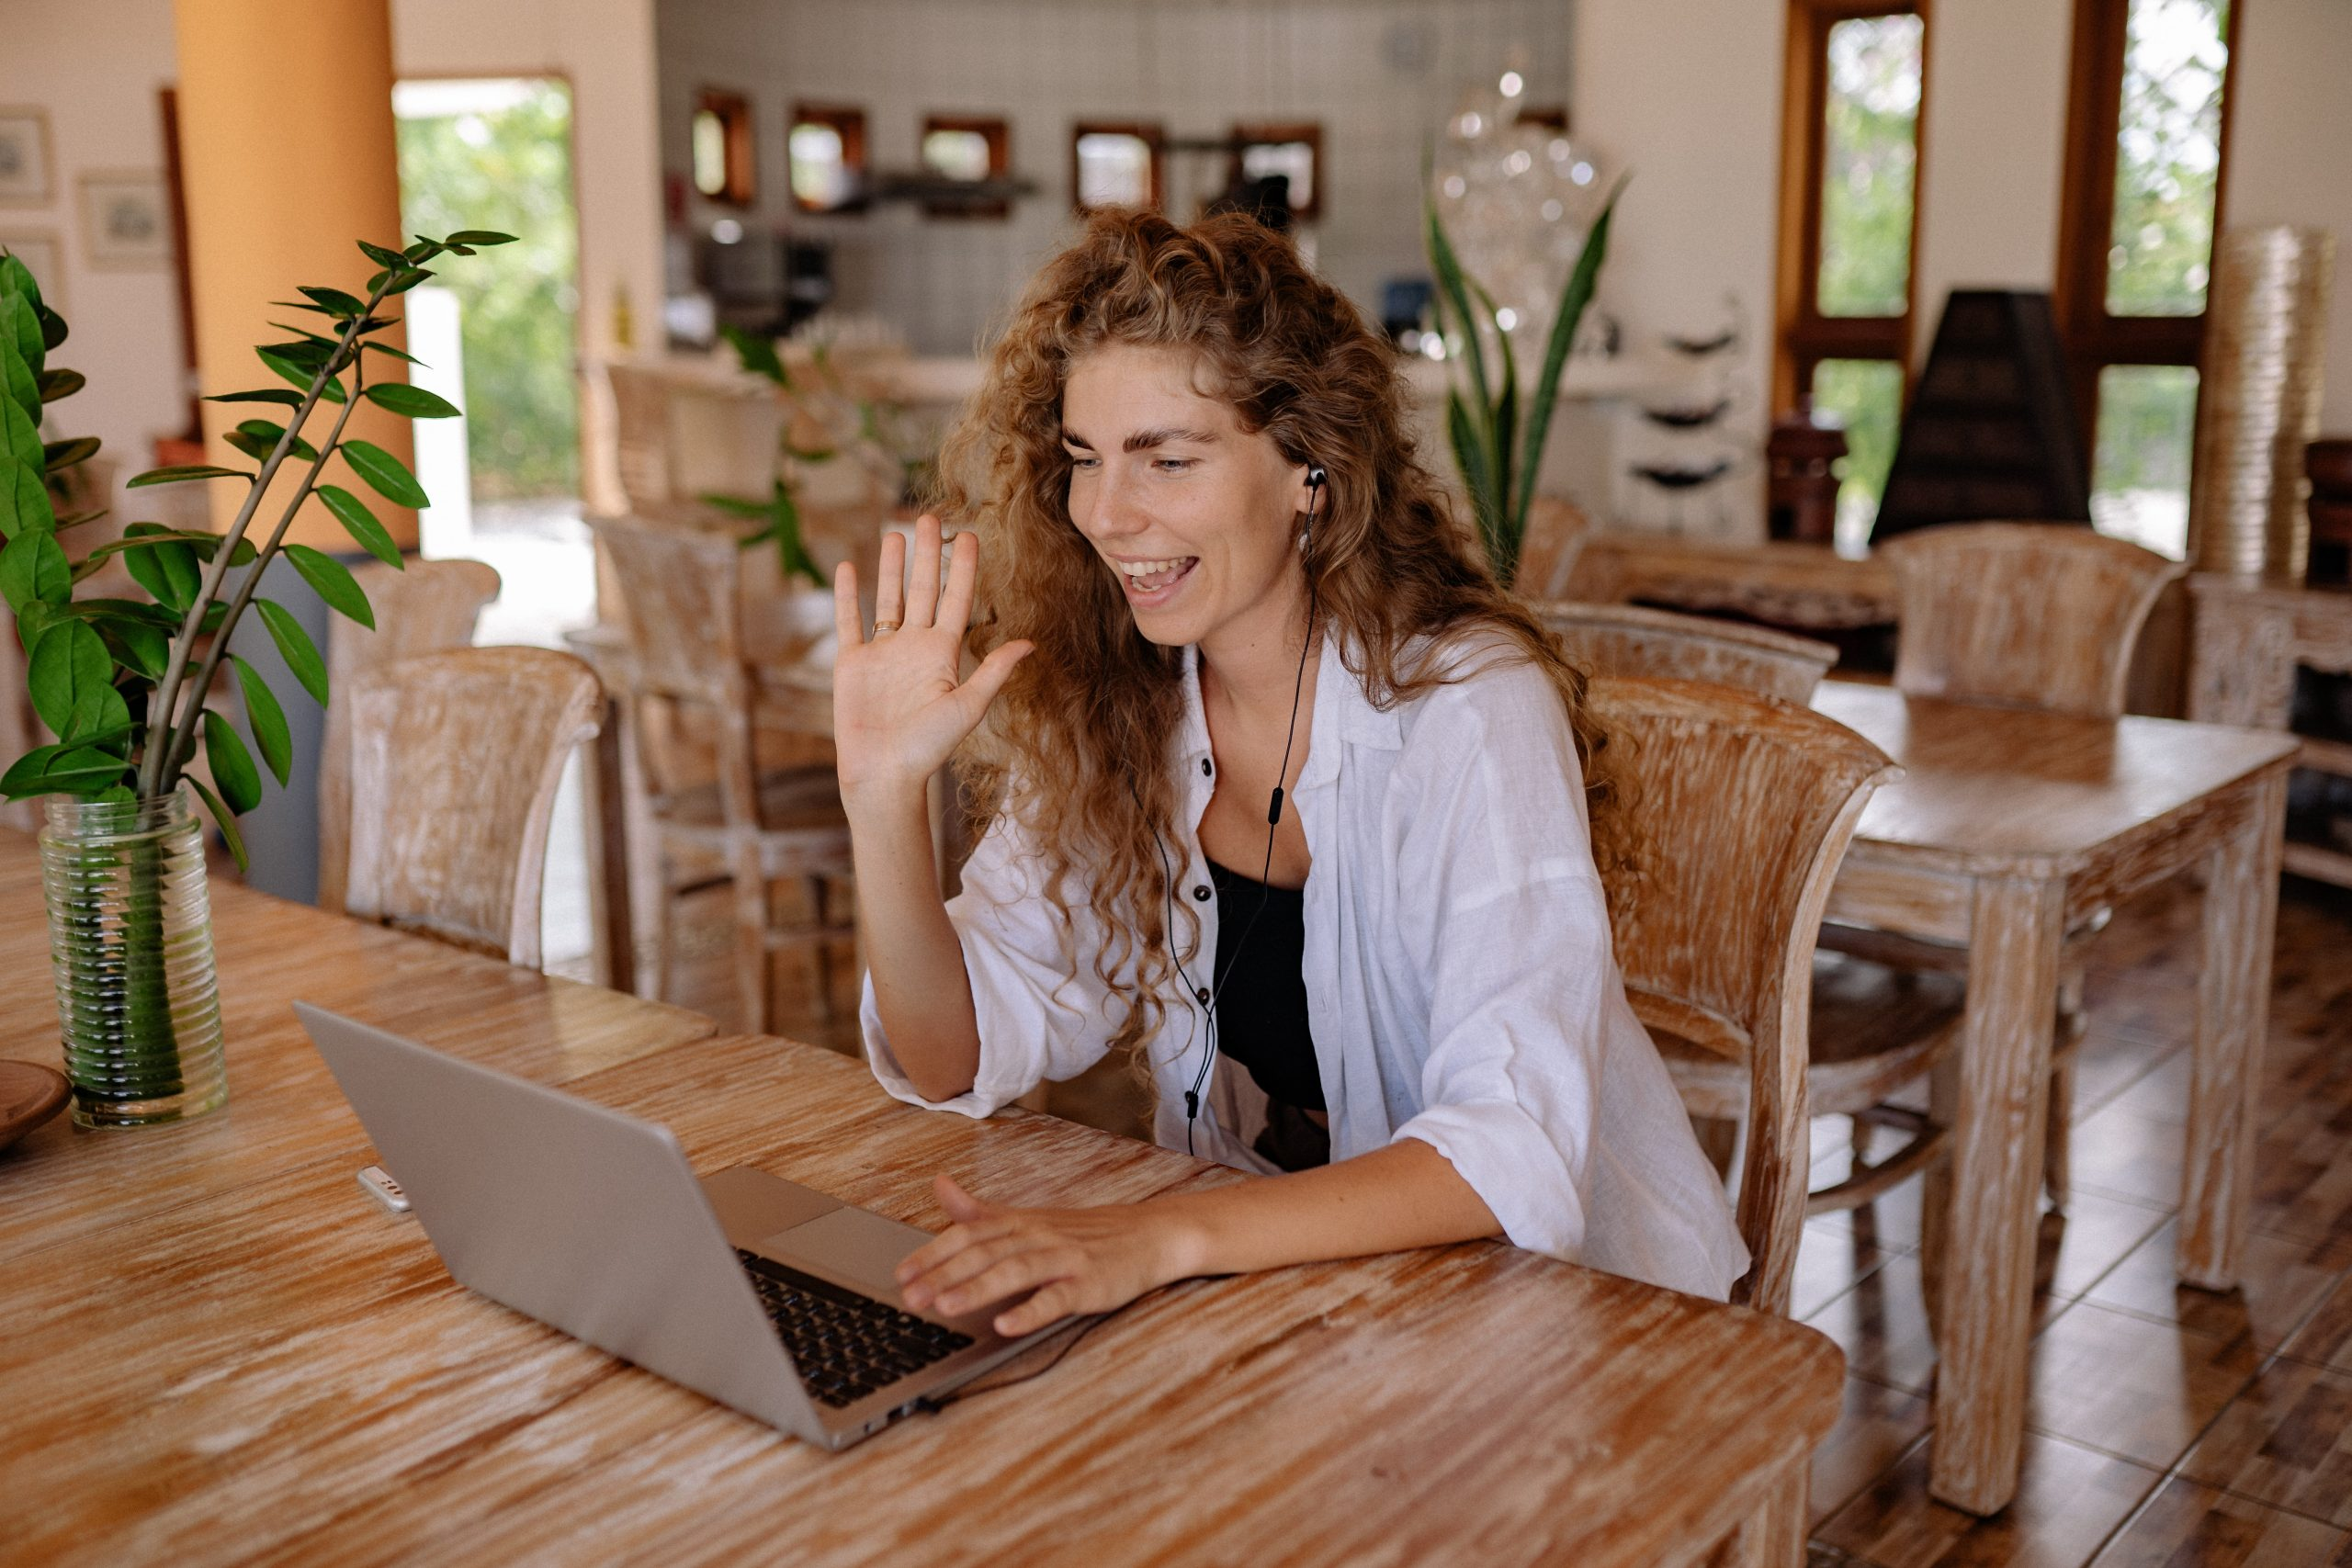 a woman sitting at a table with her laptop video-calling someone